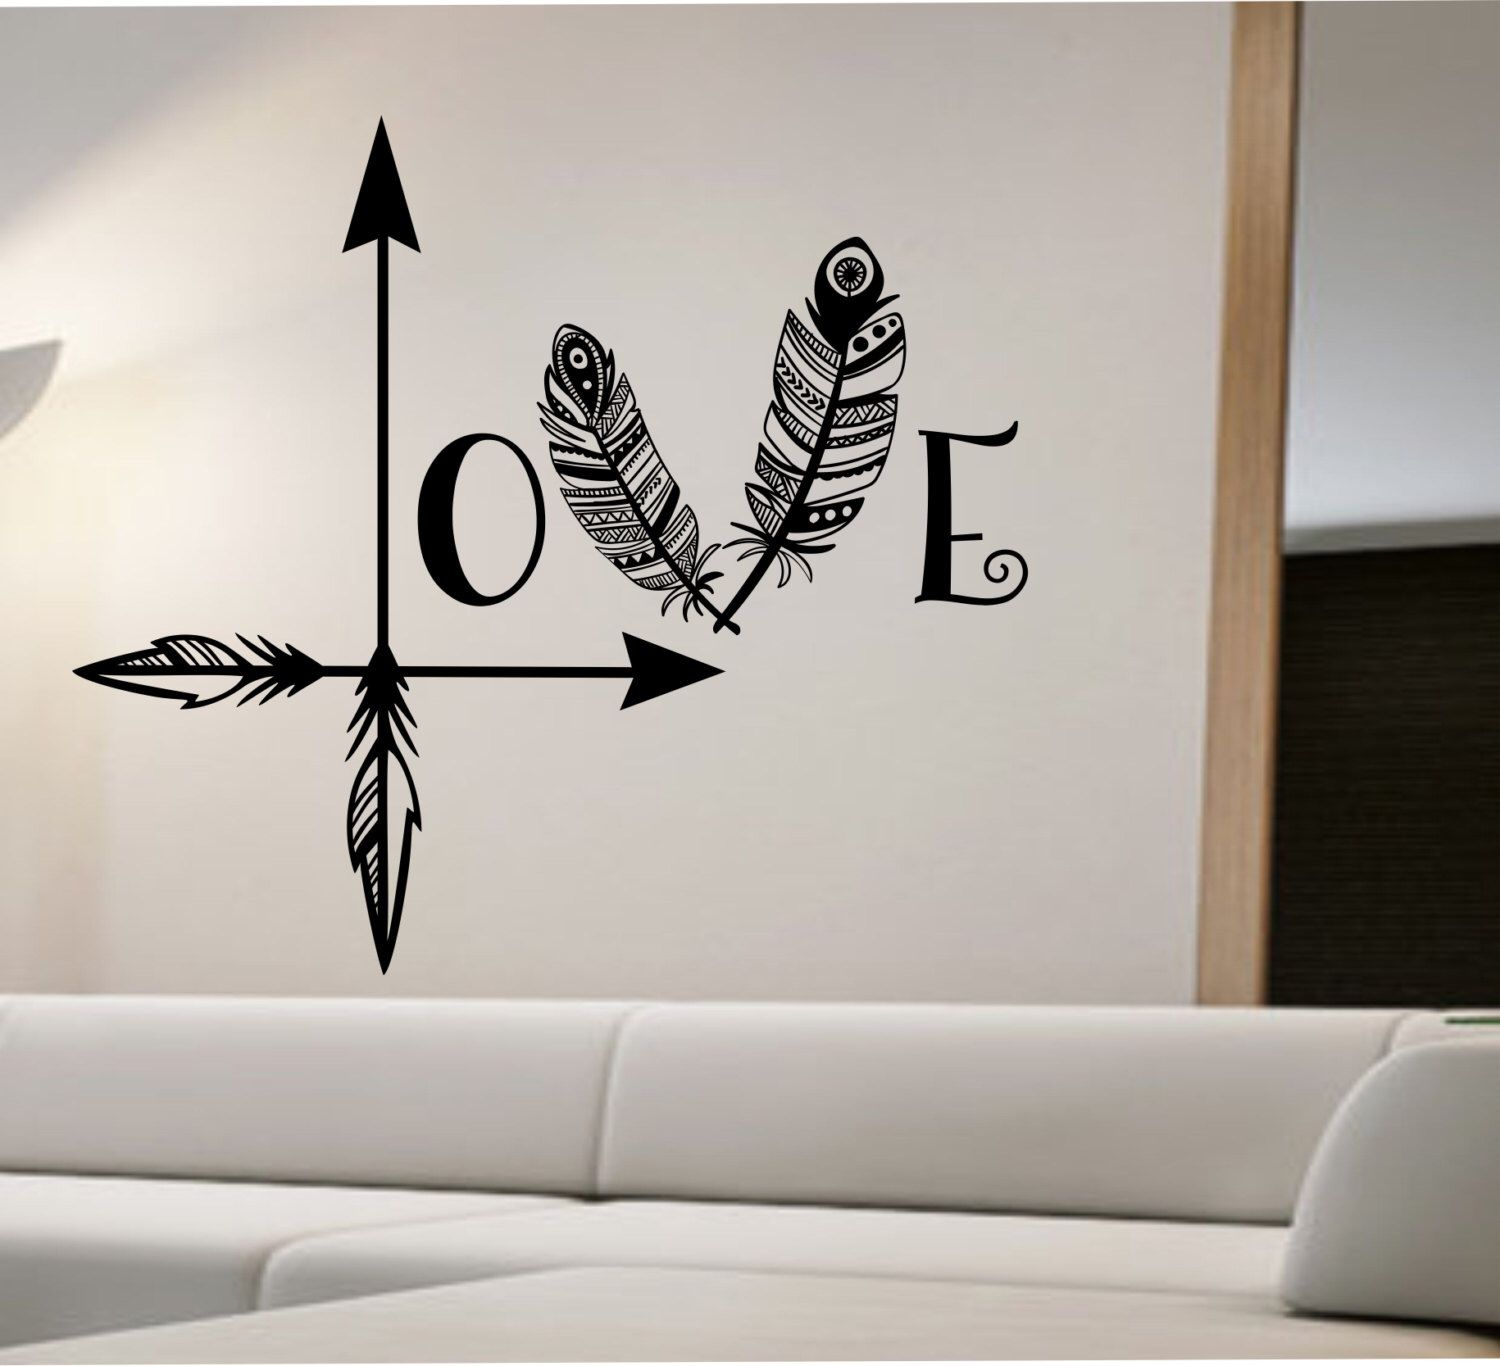 Love Arrow Wall Decal Feather Namaste Vinyl Sticker Art Decor